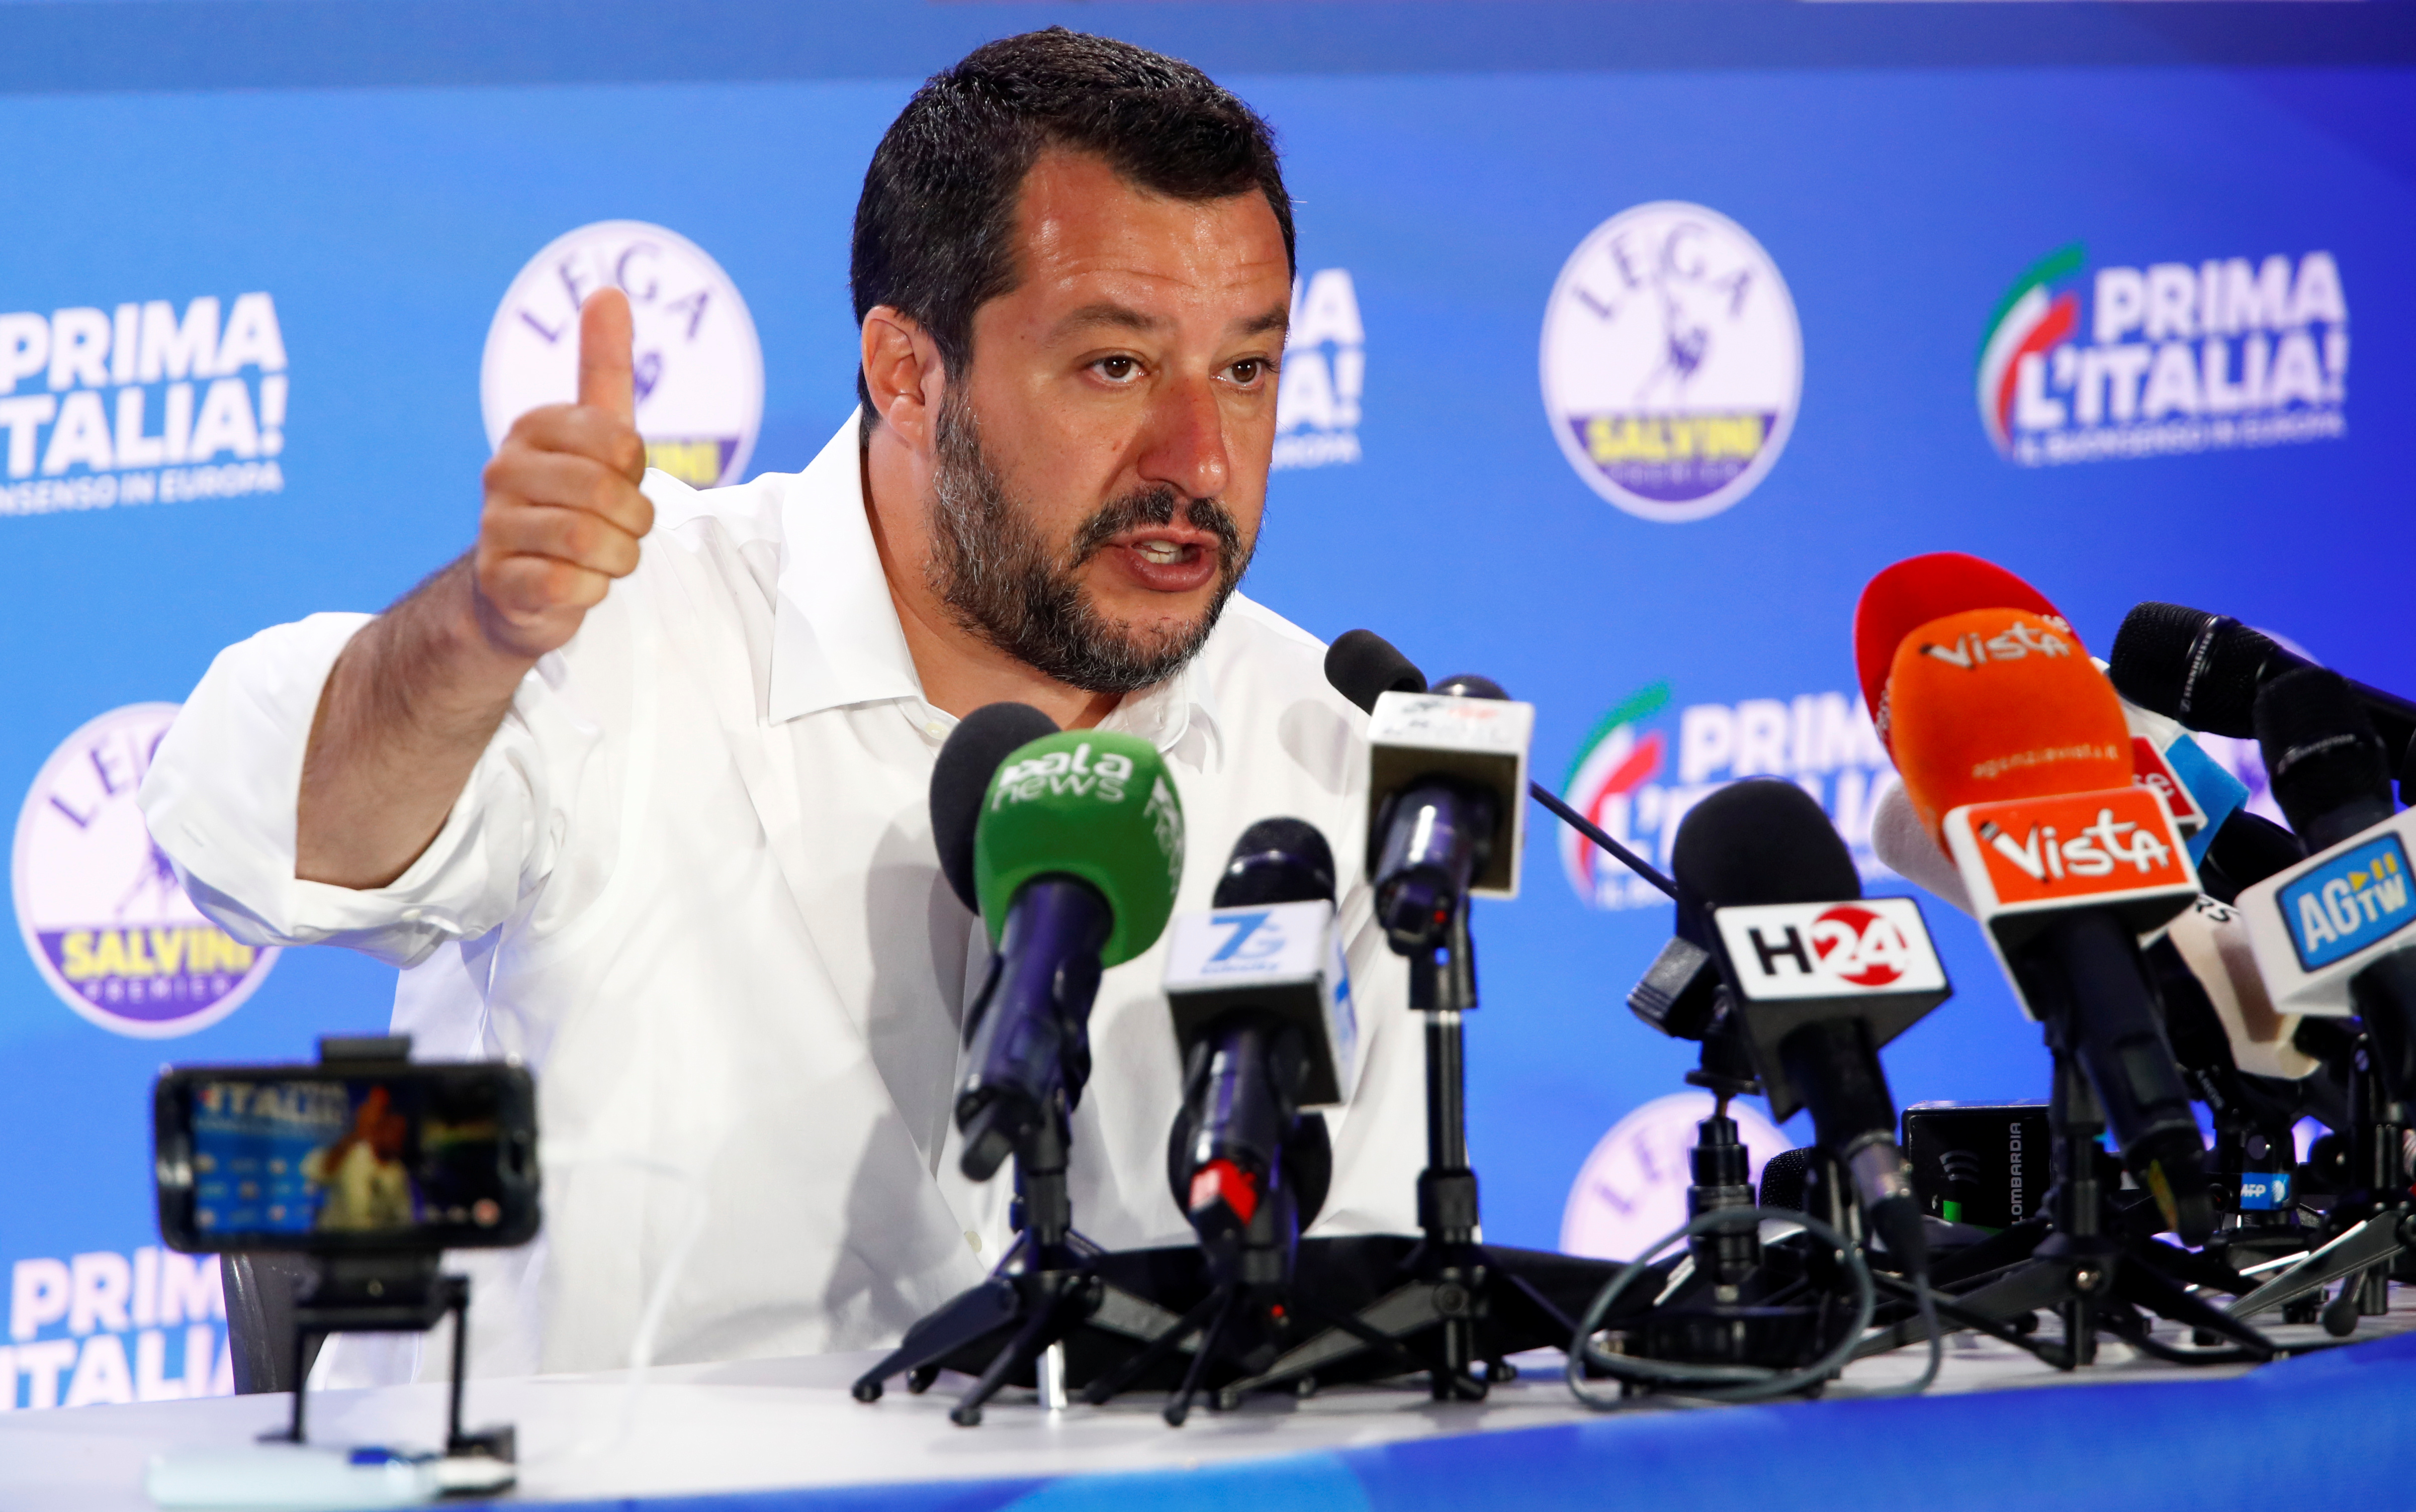 Deputy Prime Minister and League party leader Matteo Salvini speaks to the media at the League party headquarters, following the results of theEuropean Parliamentelections, in Milan, Italy, May 27, 2019.